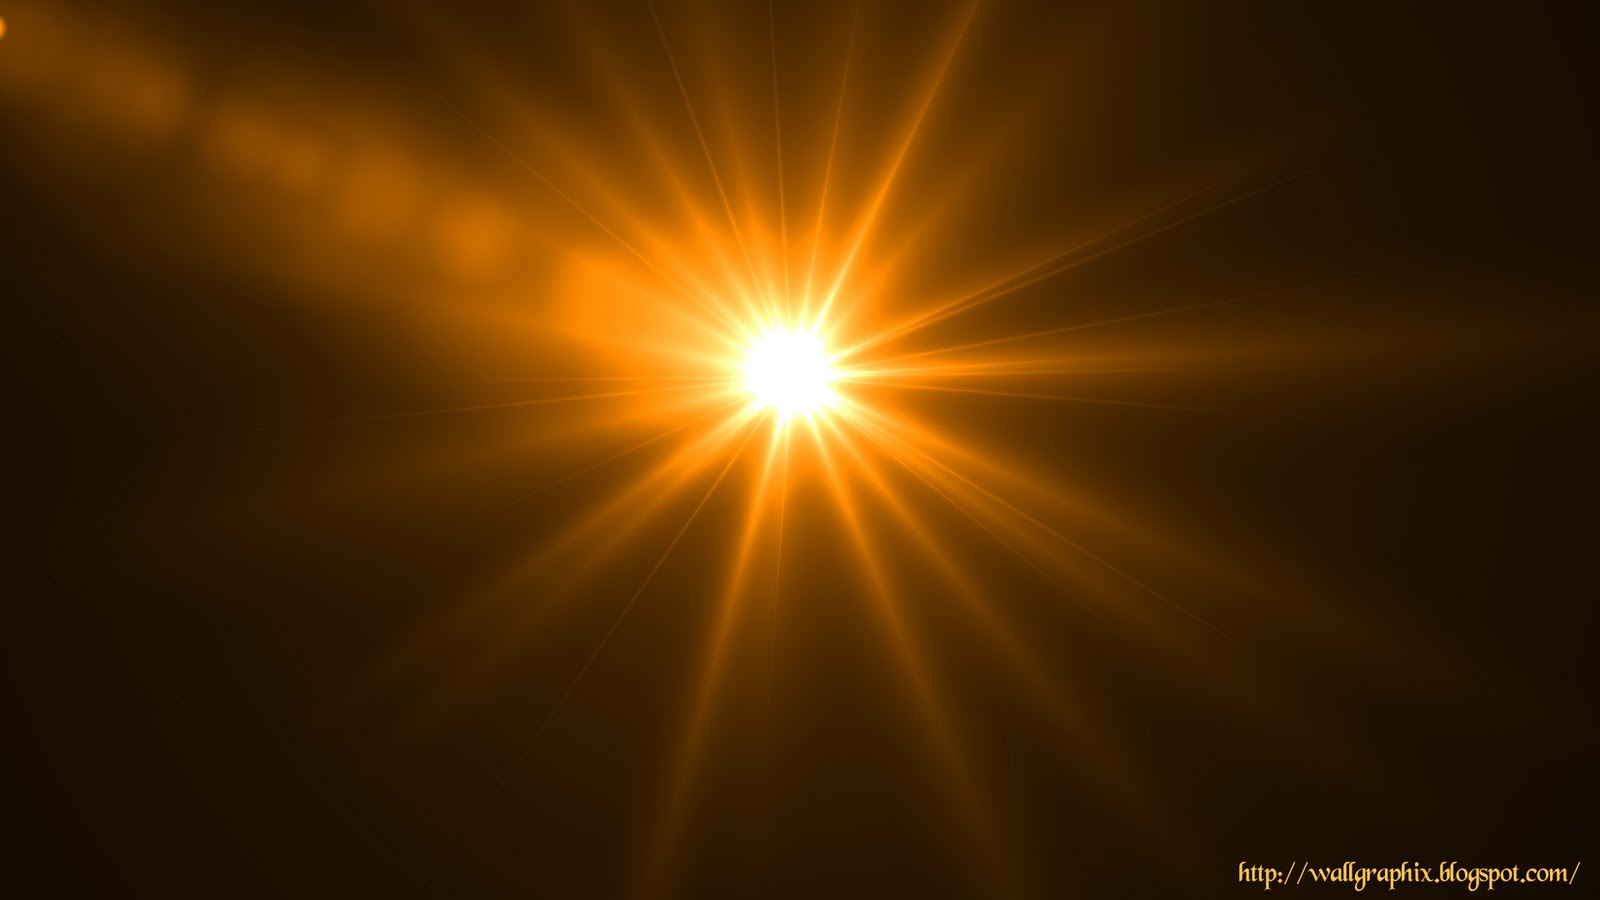 Wallpaper Hd For Mobile Free Download Animated Optical Flare Hd Wallpapers 08908 Baltana